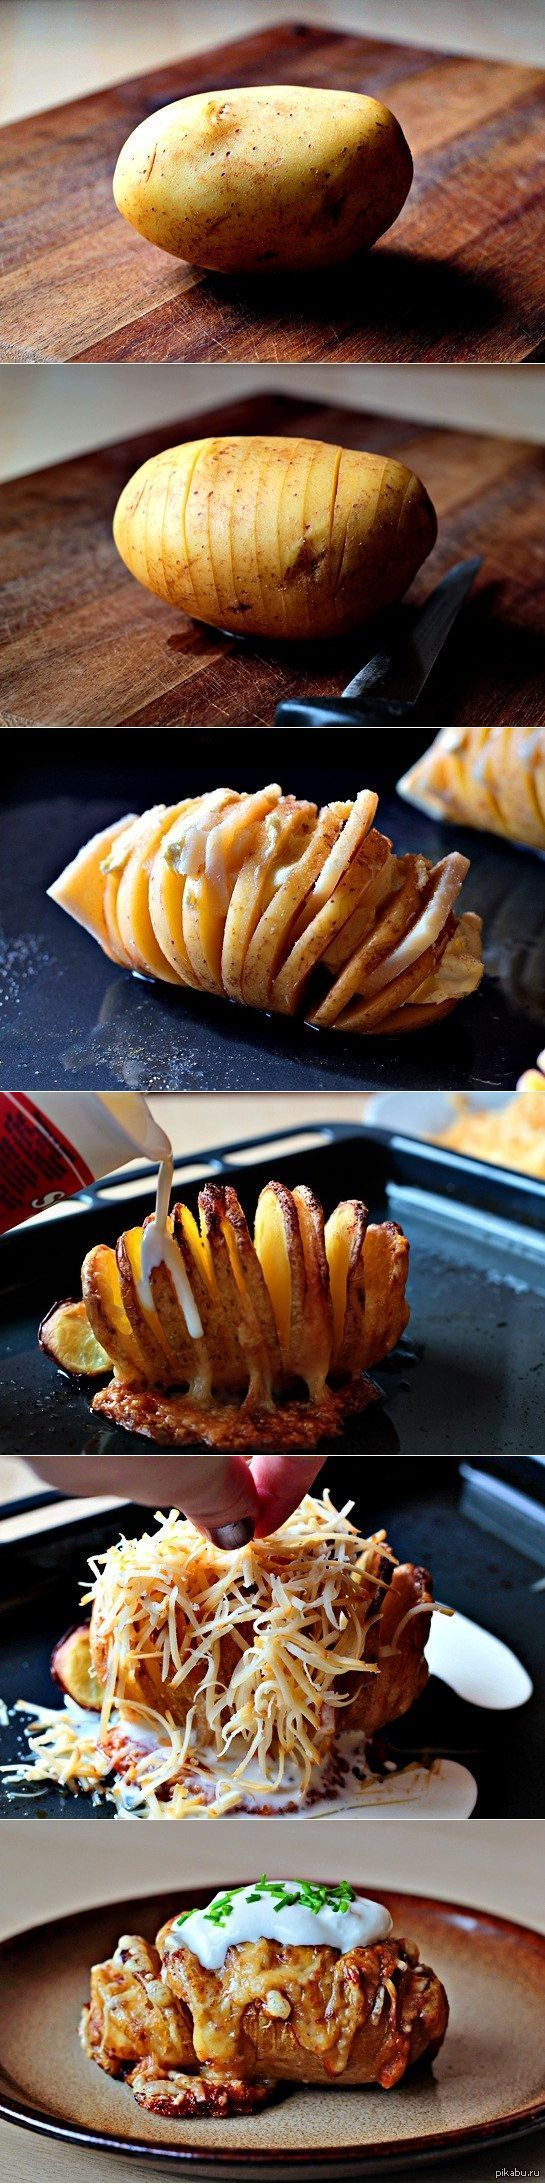 yum.: Baked Potatoes, Food, Perfect Baked, Sliced Baked Potato